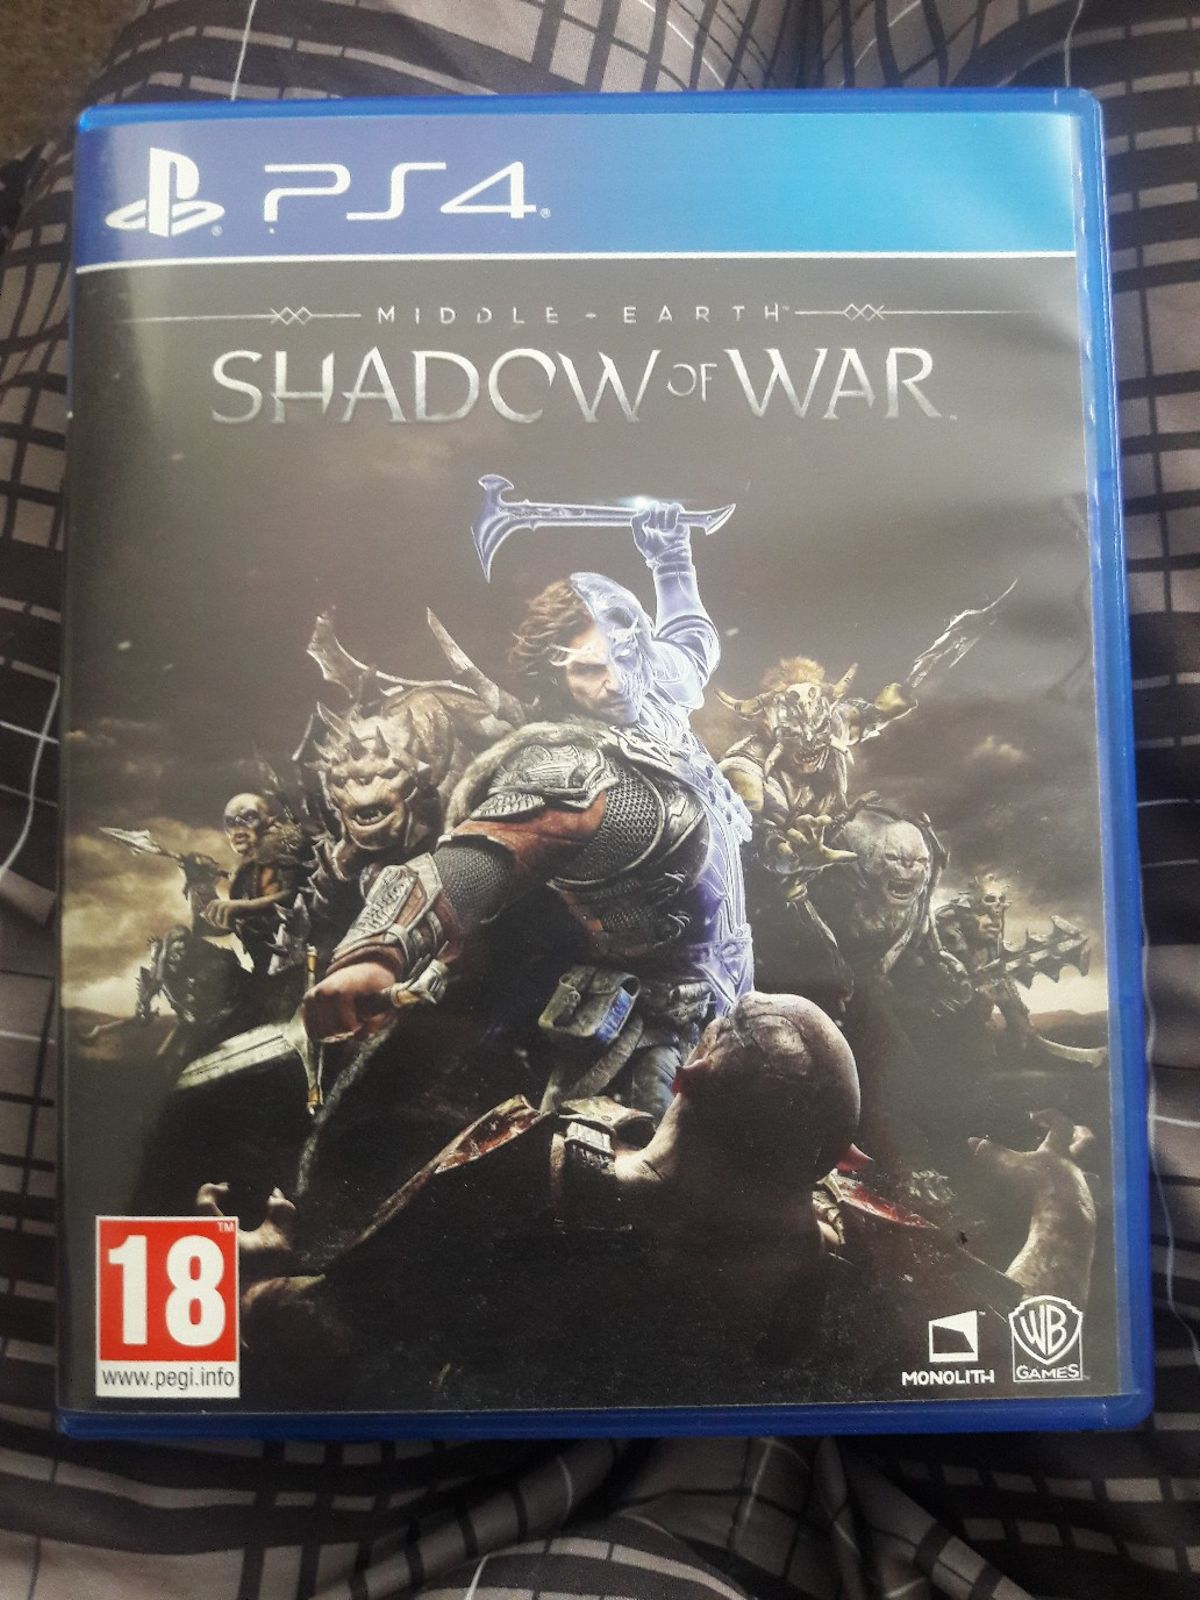 Middle Earth -Shadow of War (PS4)